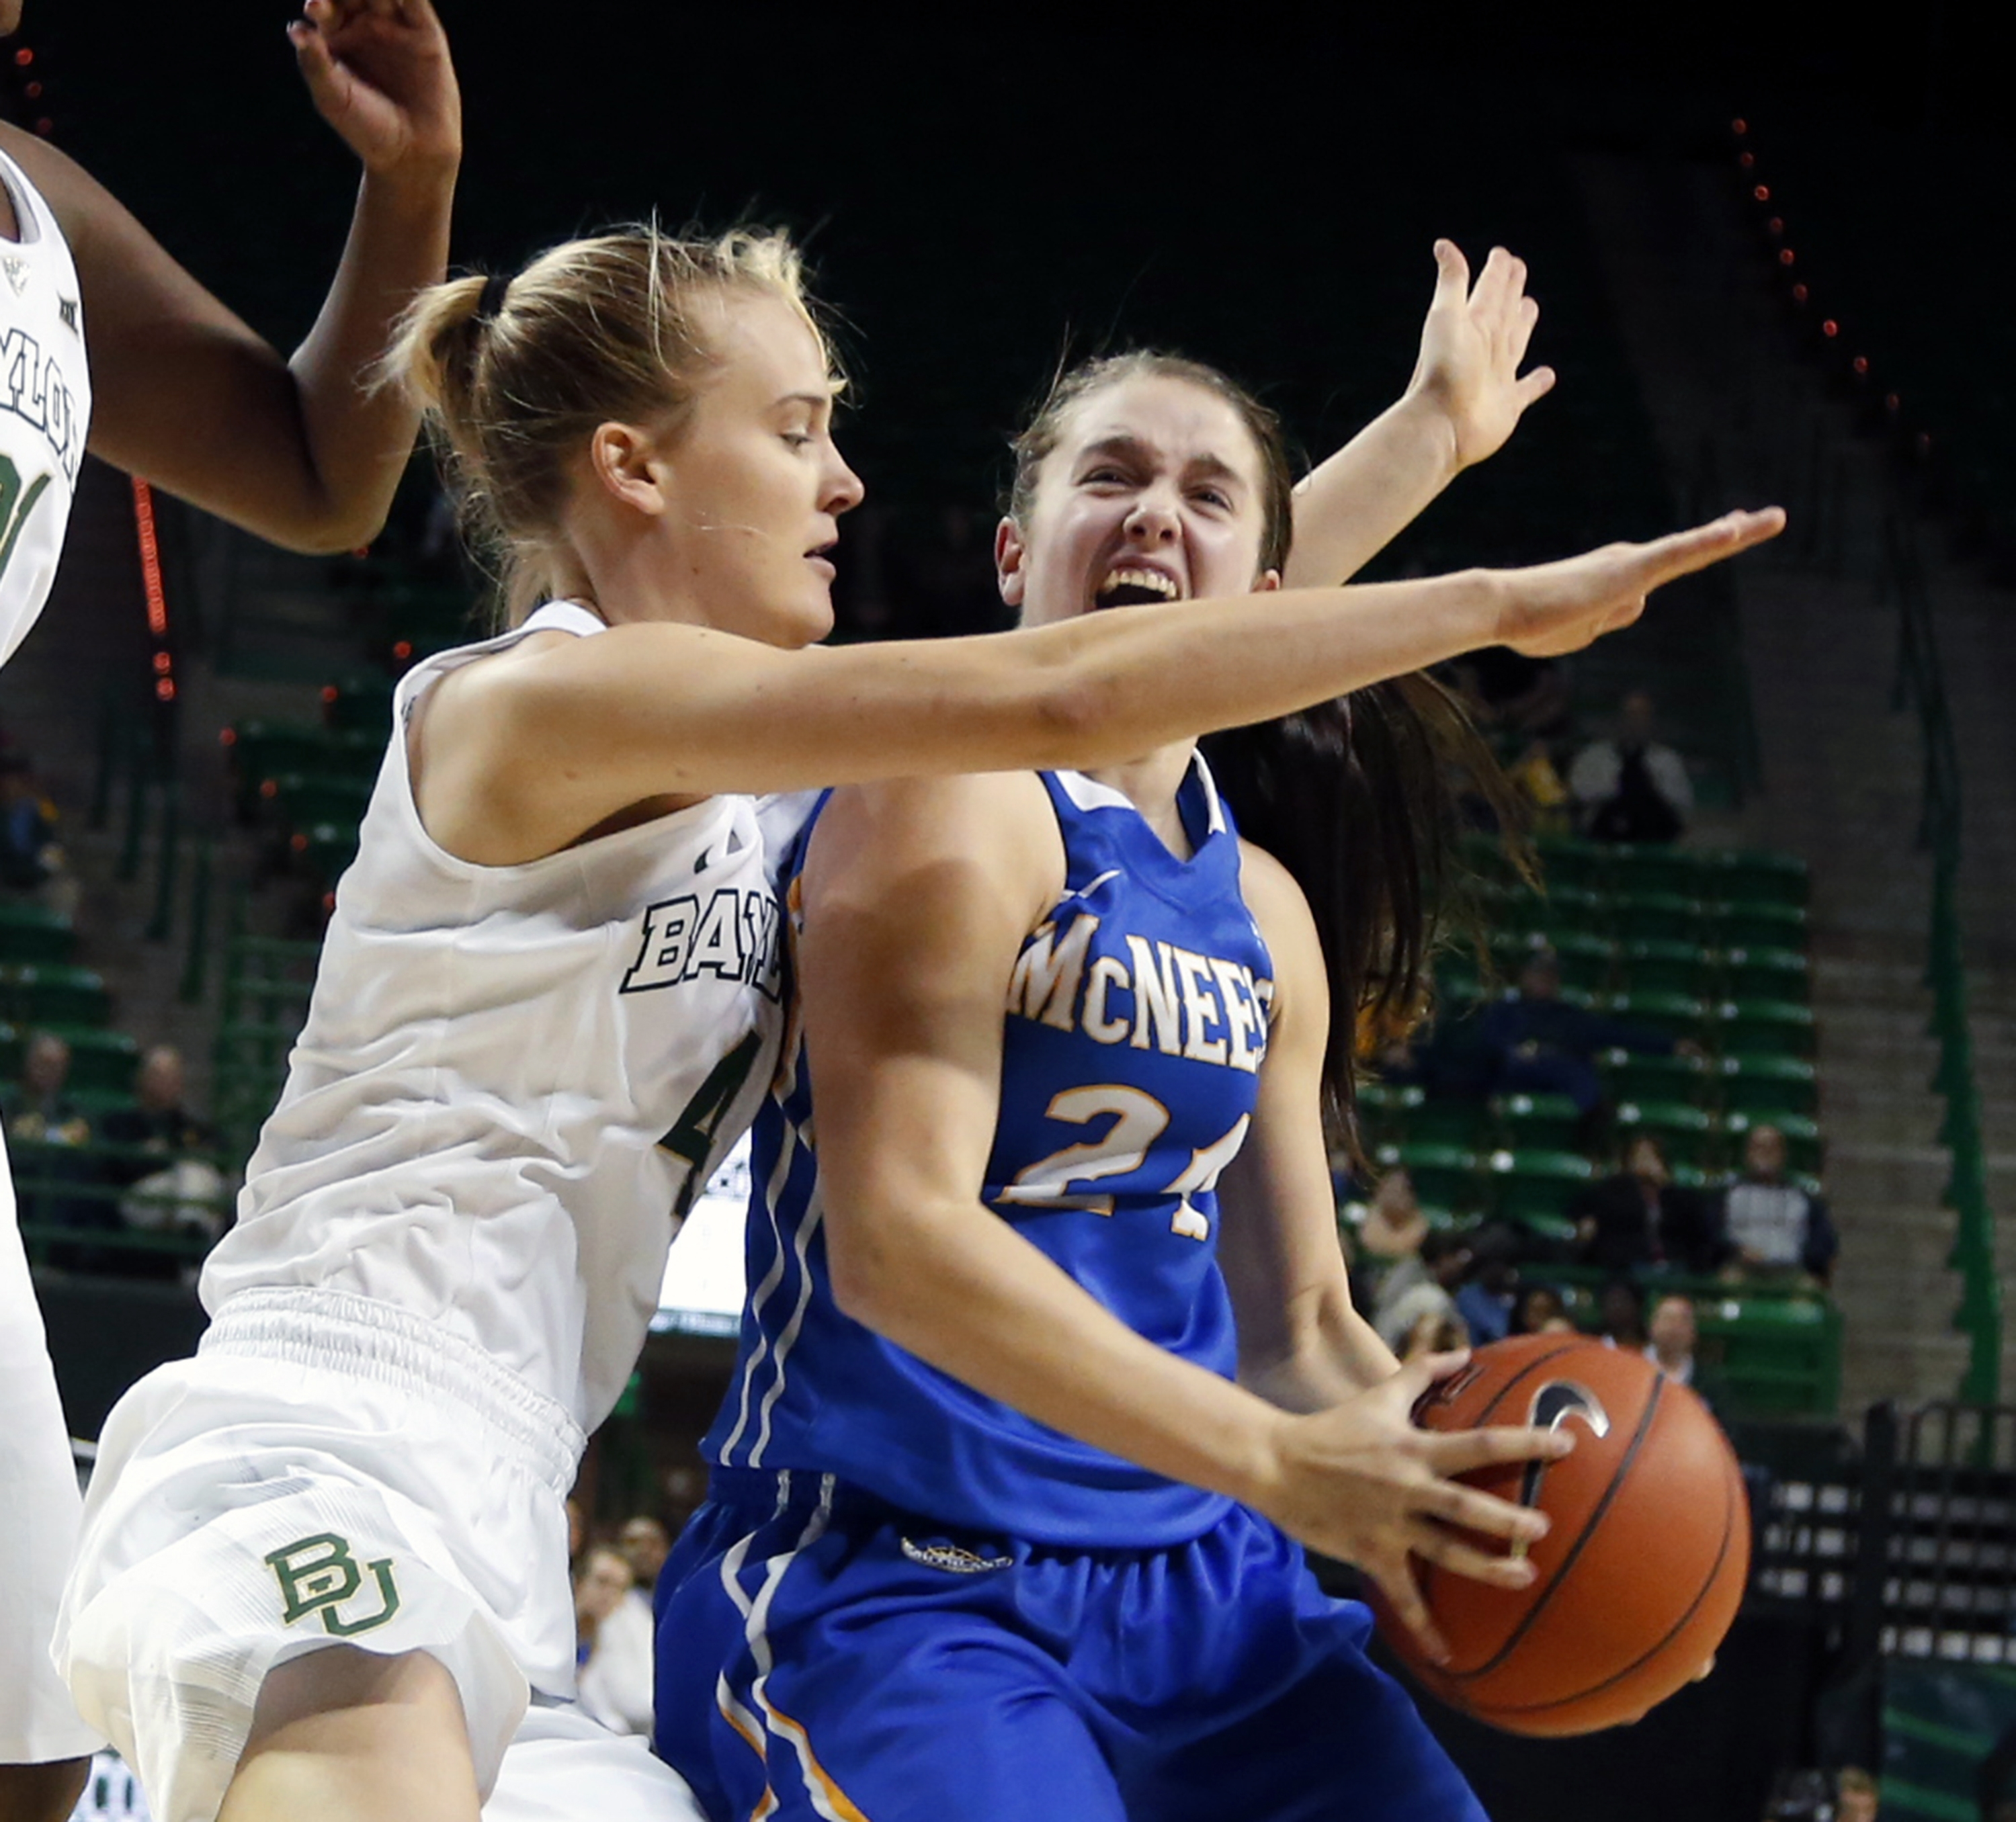 Baylor guard Kristy Wallace (4), left, guards McNeese State guard Haily Jenkins (24), right, in the first half of an NCAA college basketball game, Sunday, Dec. 13, 2015, in Waco, Texas. (AP Photo/Rod Aydelotte)